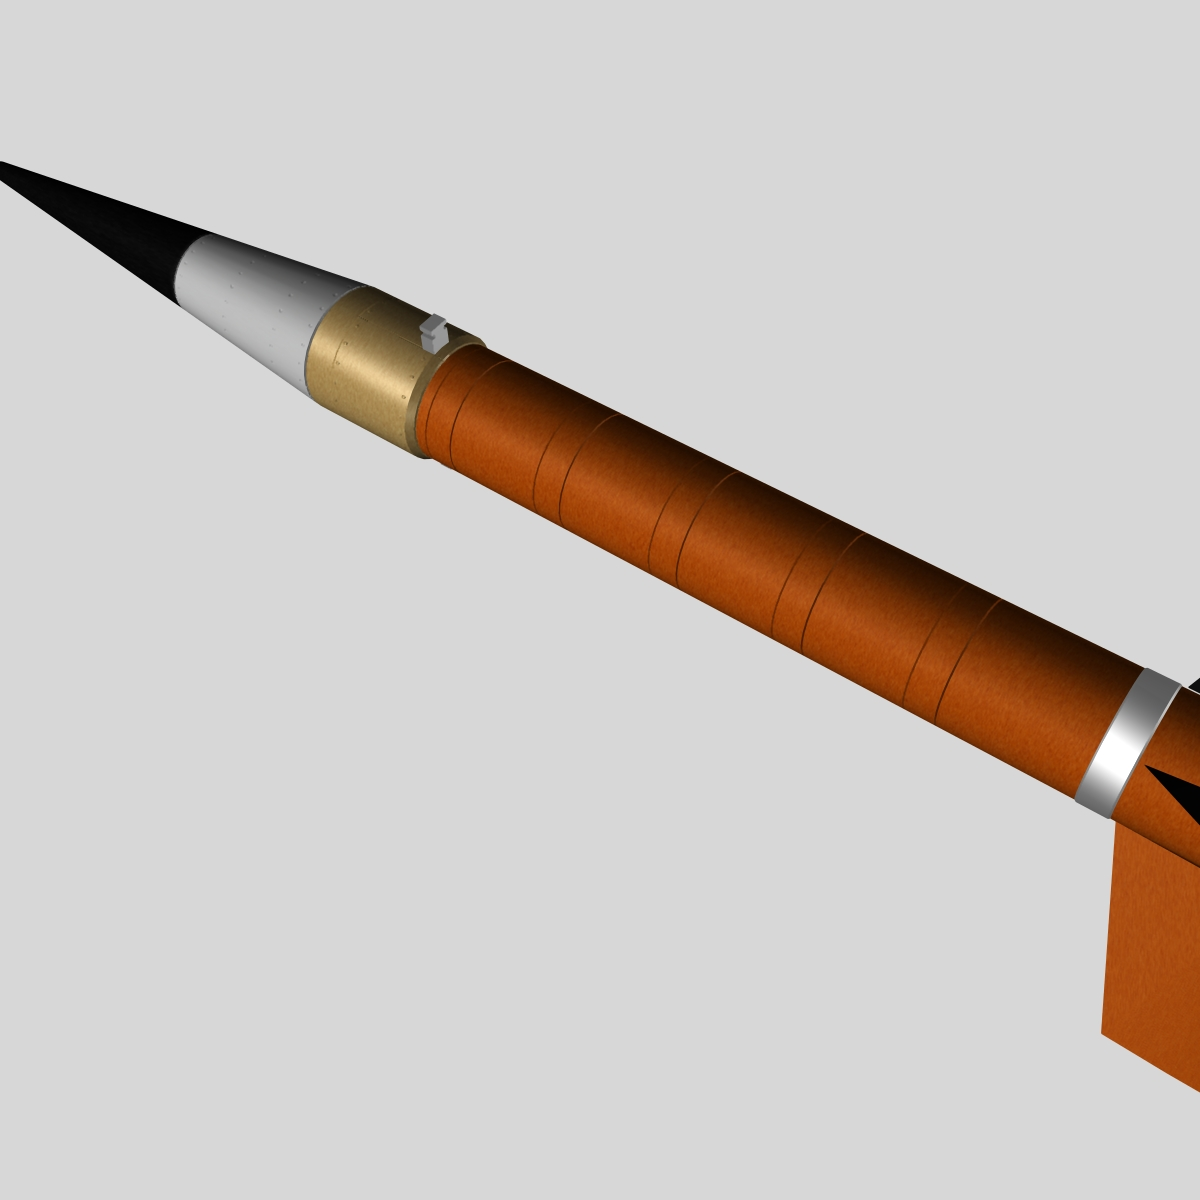 us terrier-nike missile 3d model 3ds dxf cob x obj 140335